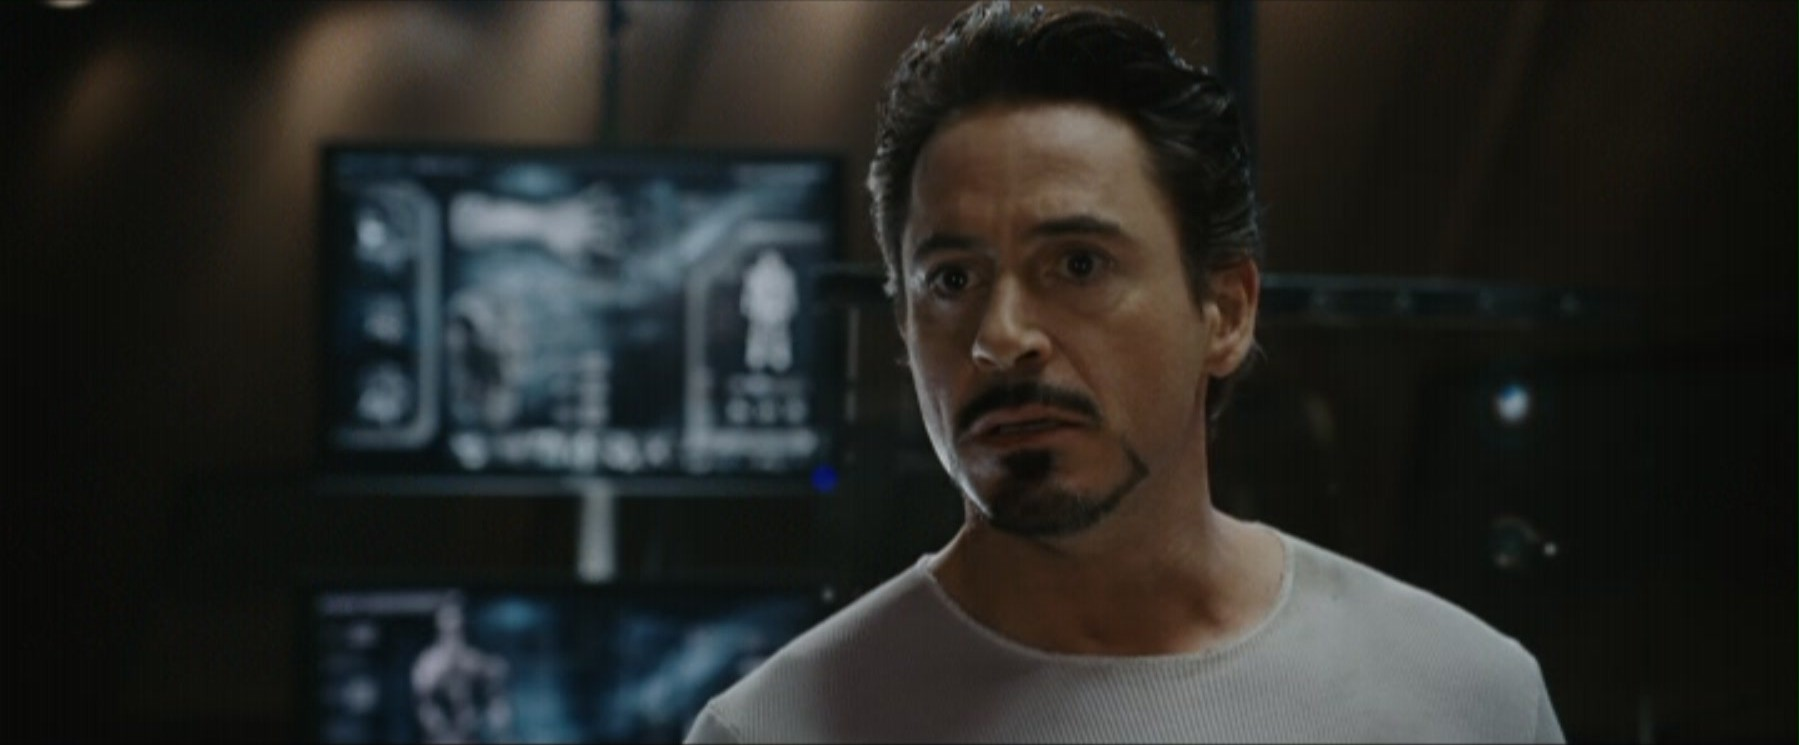 tony stark images hd - photo #35